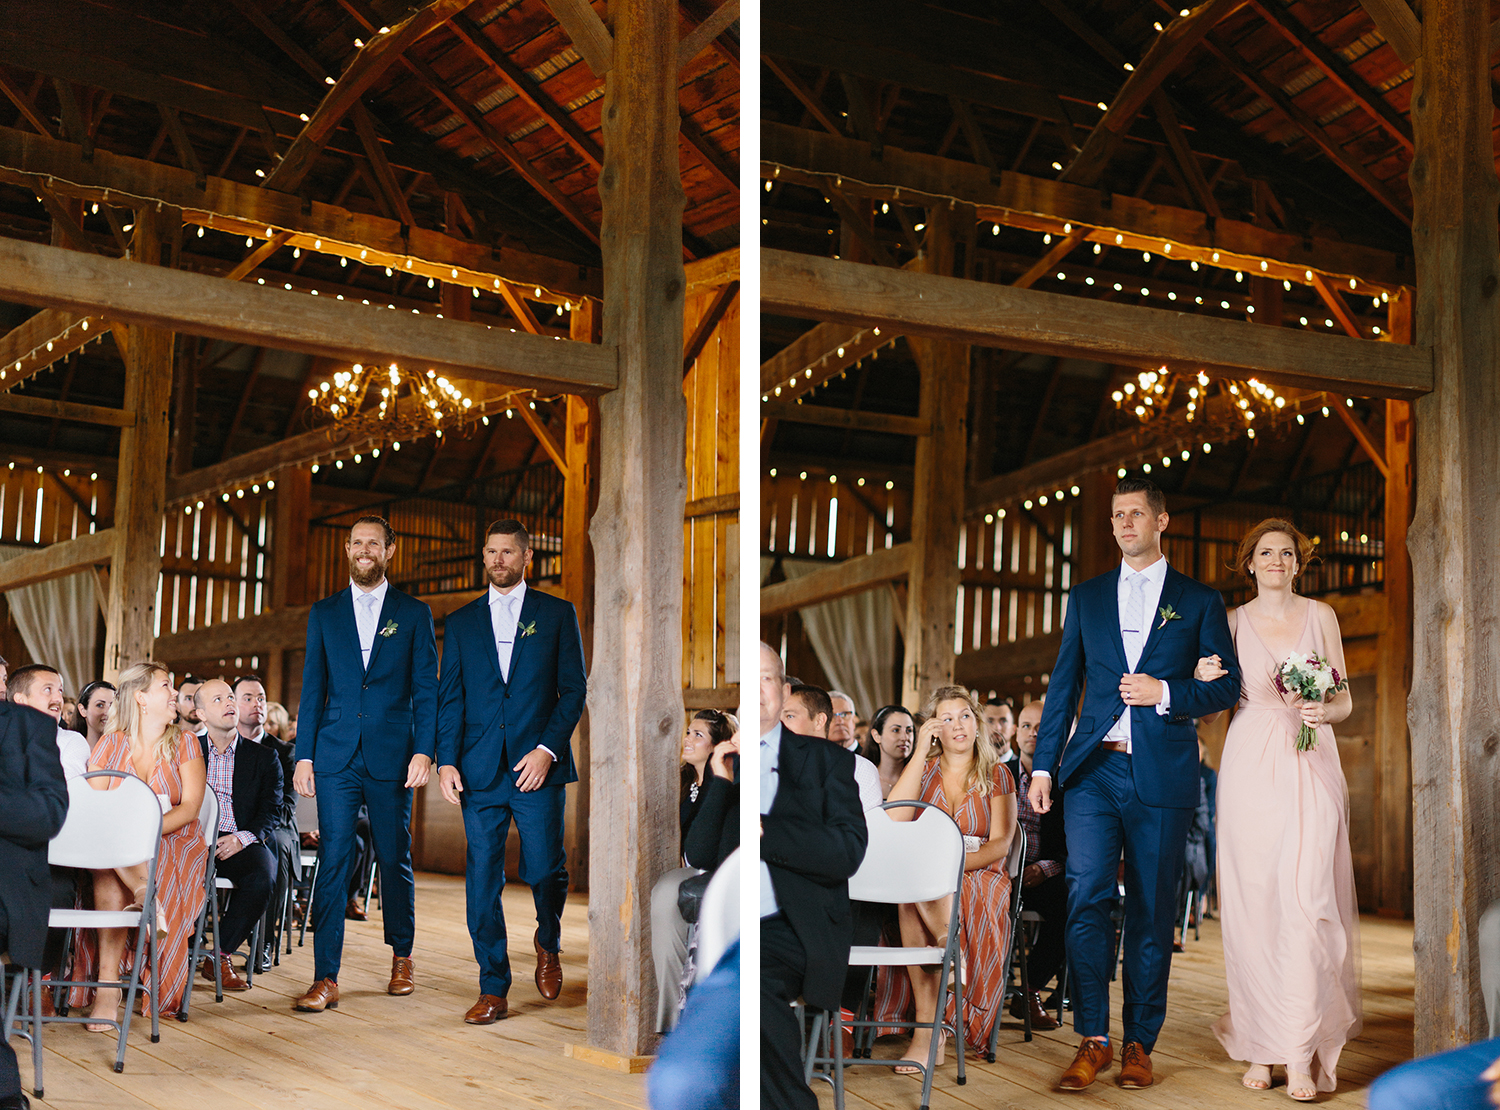 26-Editorial-Toronto-Wedding-Photographers-Photojournalistic-Wedding-Photography-in-Toronto-Ryanne-Hollies-Photography-candid-documentary-bradford-barn-farm-wedding-venue-rustic-inspiration-indoor-ceremony-bridesmaid-and-groomsman.jpg